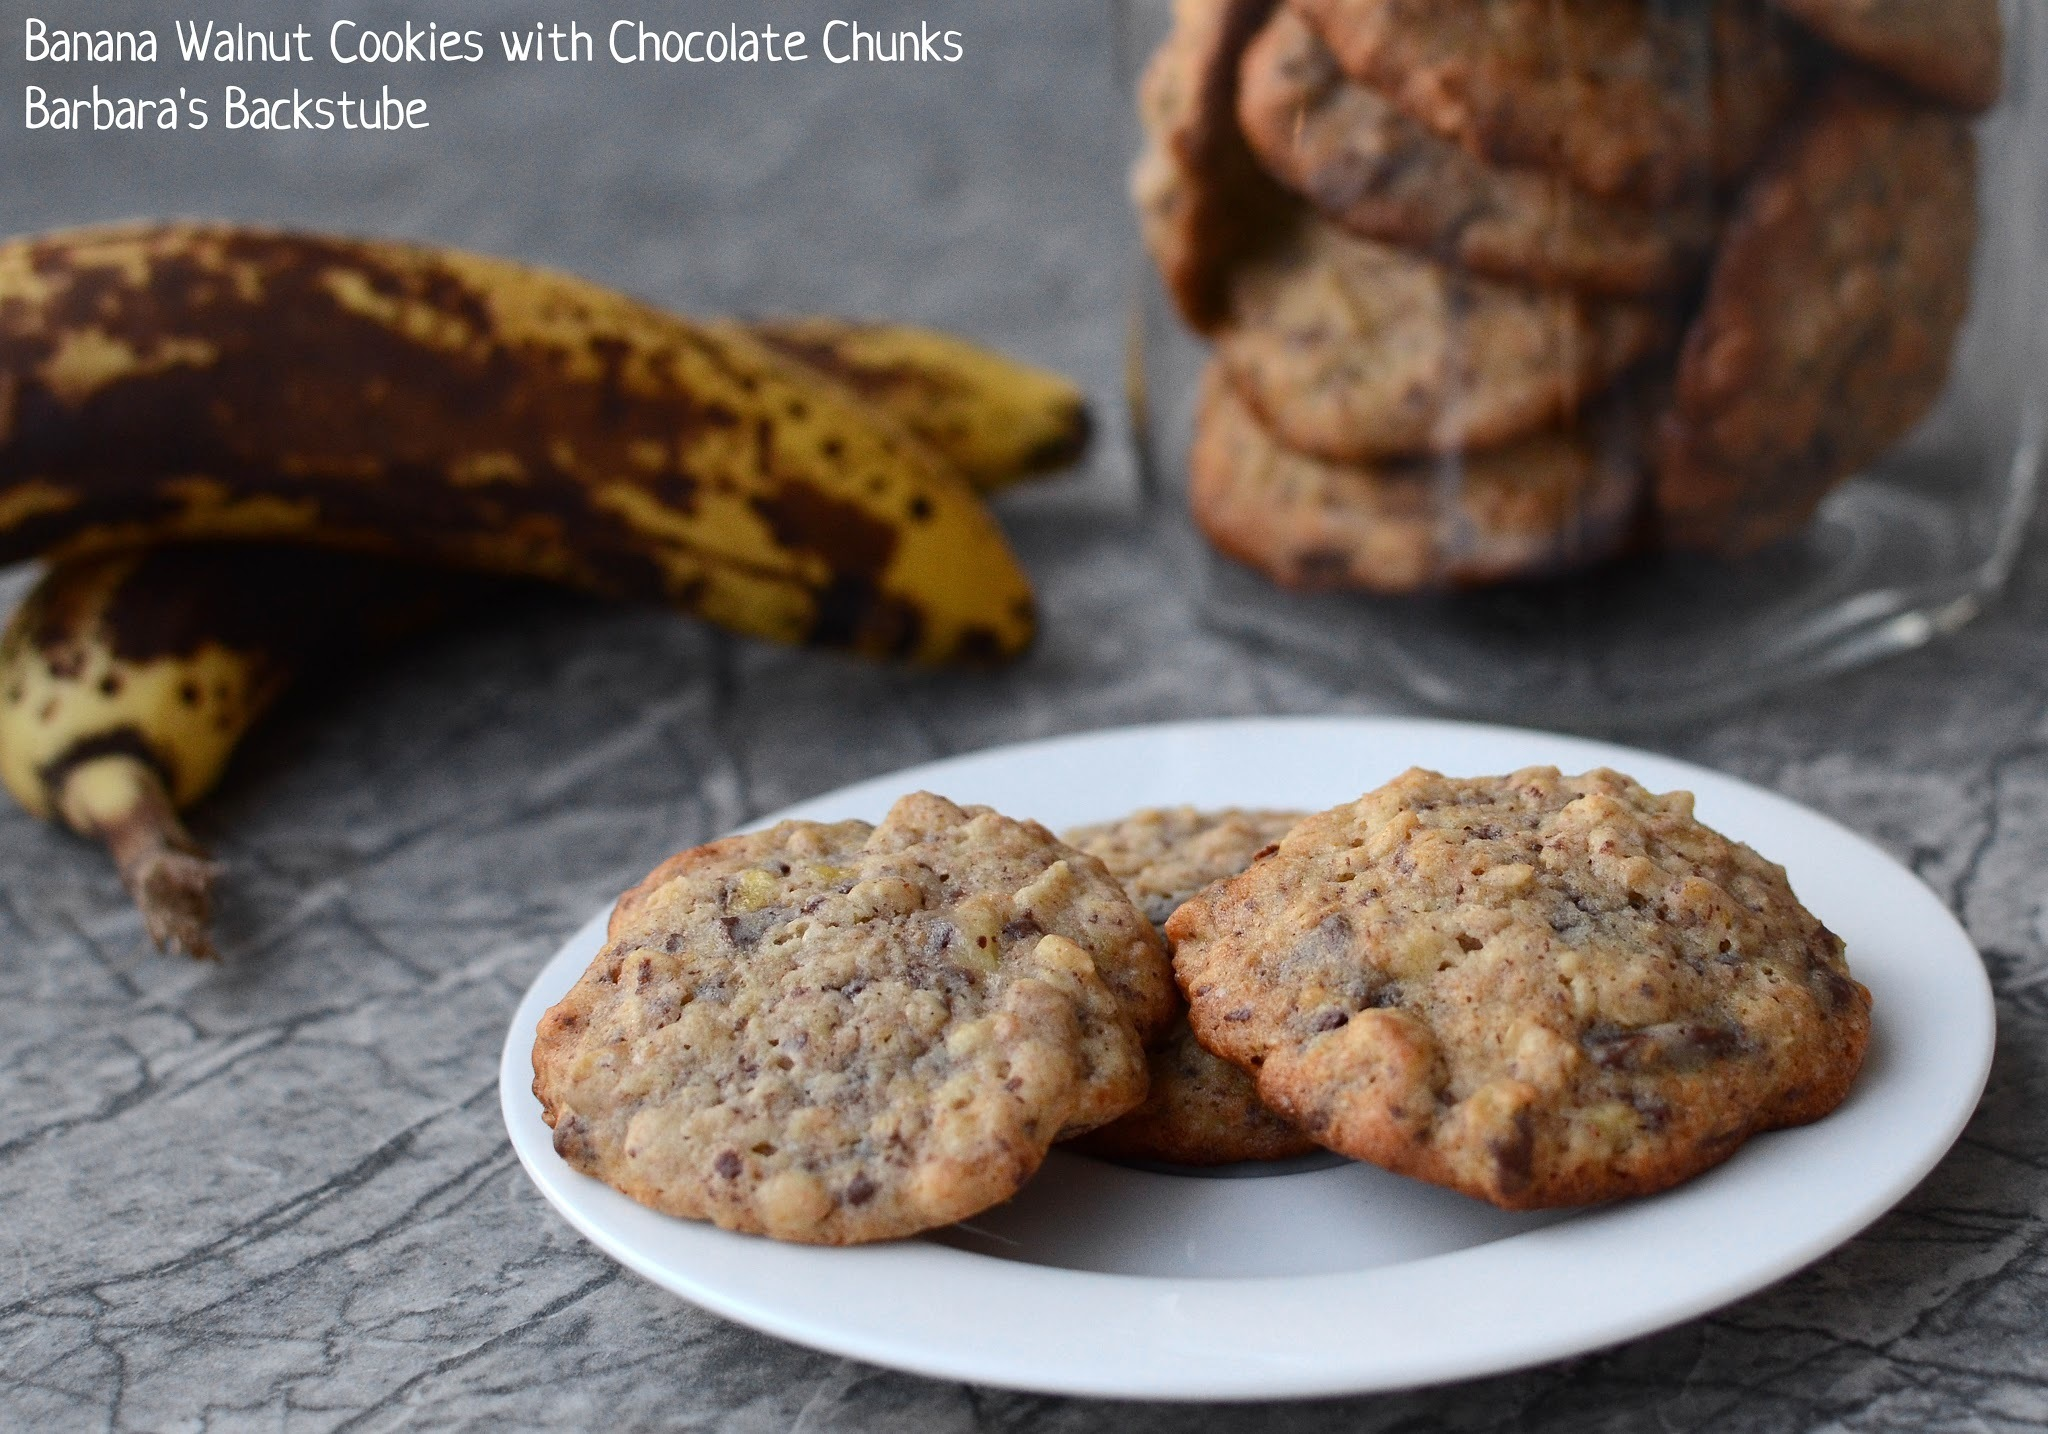 Banana Walnut Cookies with Chocolate Chunks